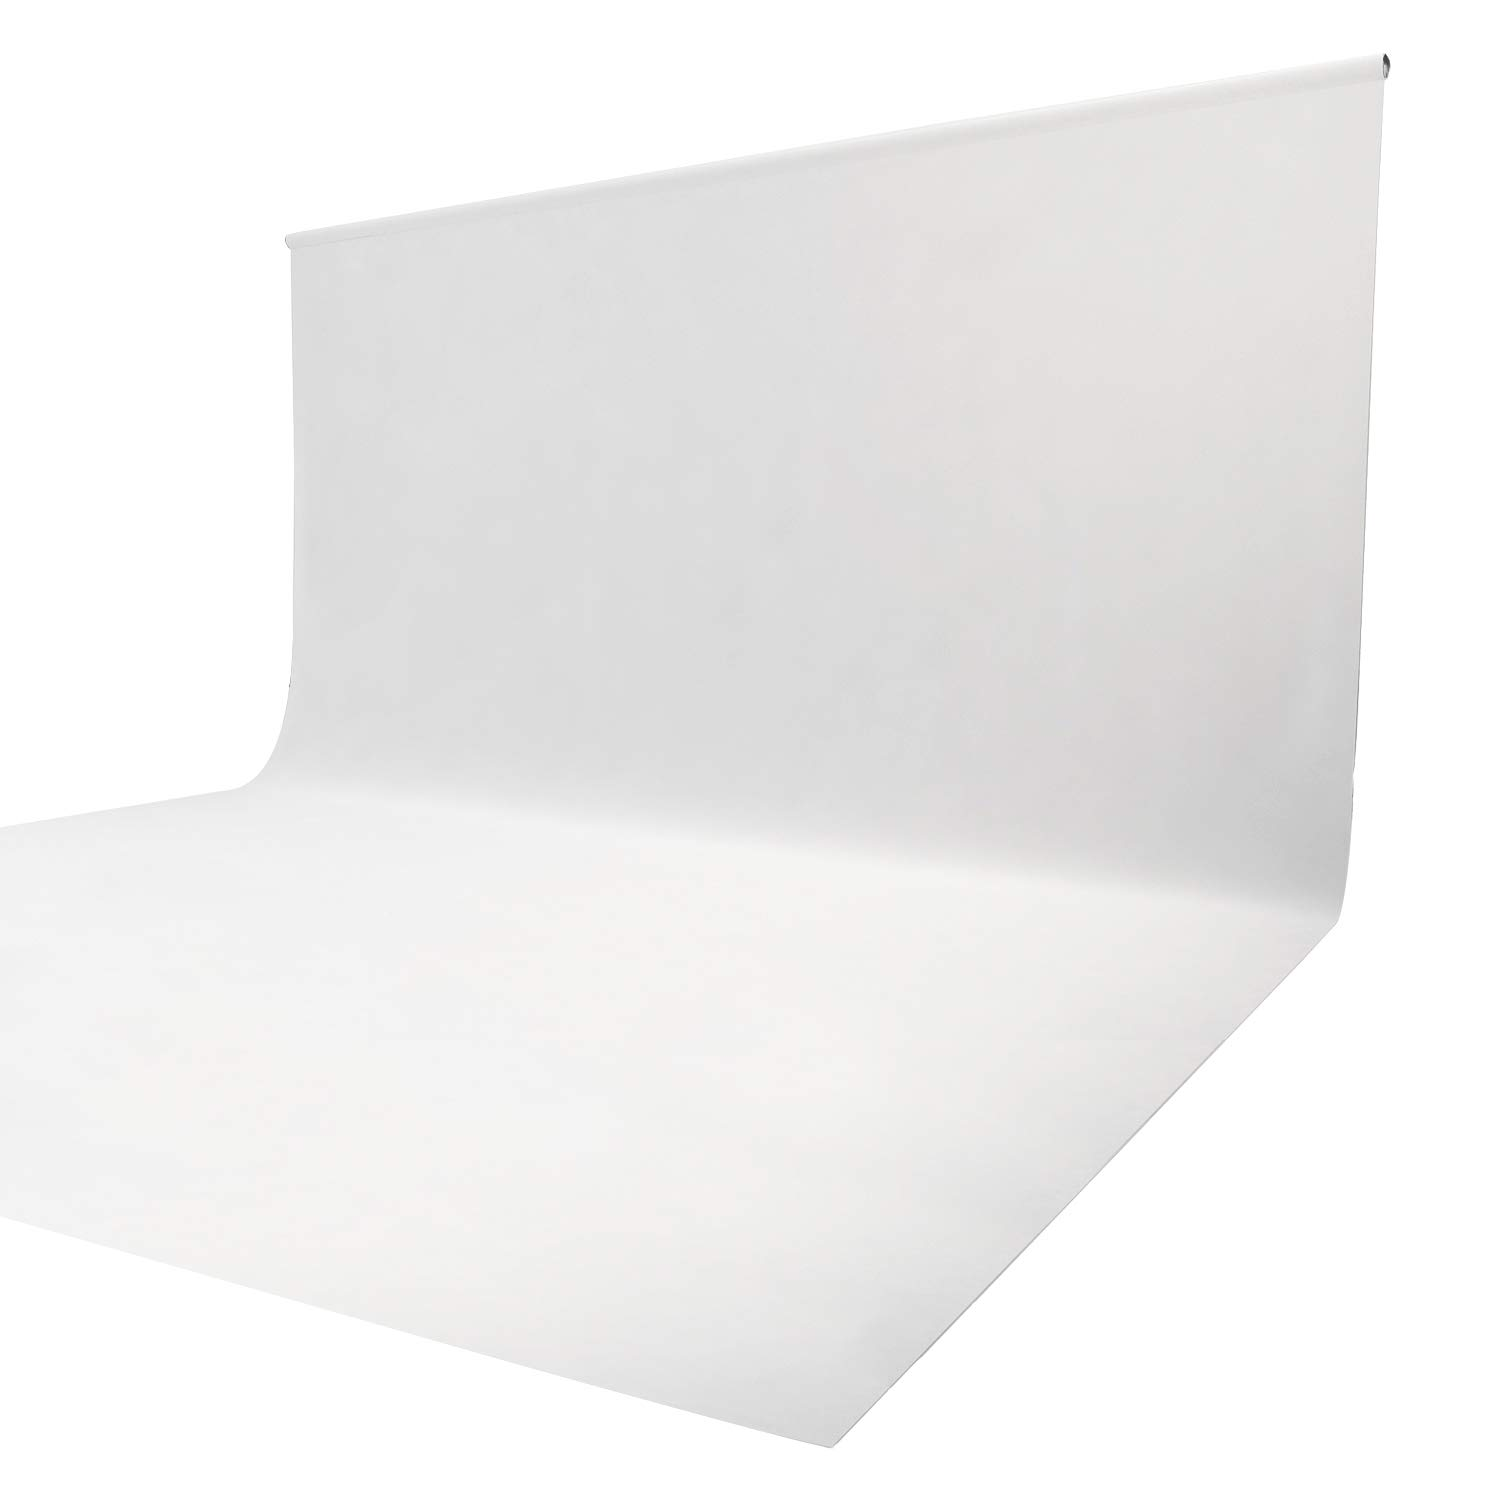 Issuntex 10X12 ft White Background Muslin Backdrop,Photo Studio,Collapsible High Density Screen for Video Photography and Television by ISSUNTEX